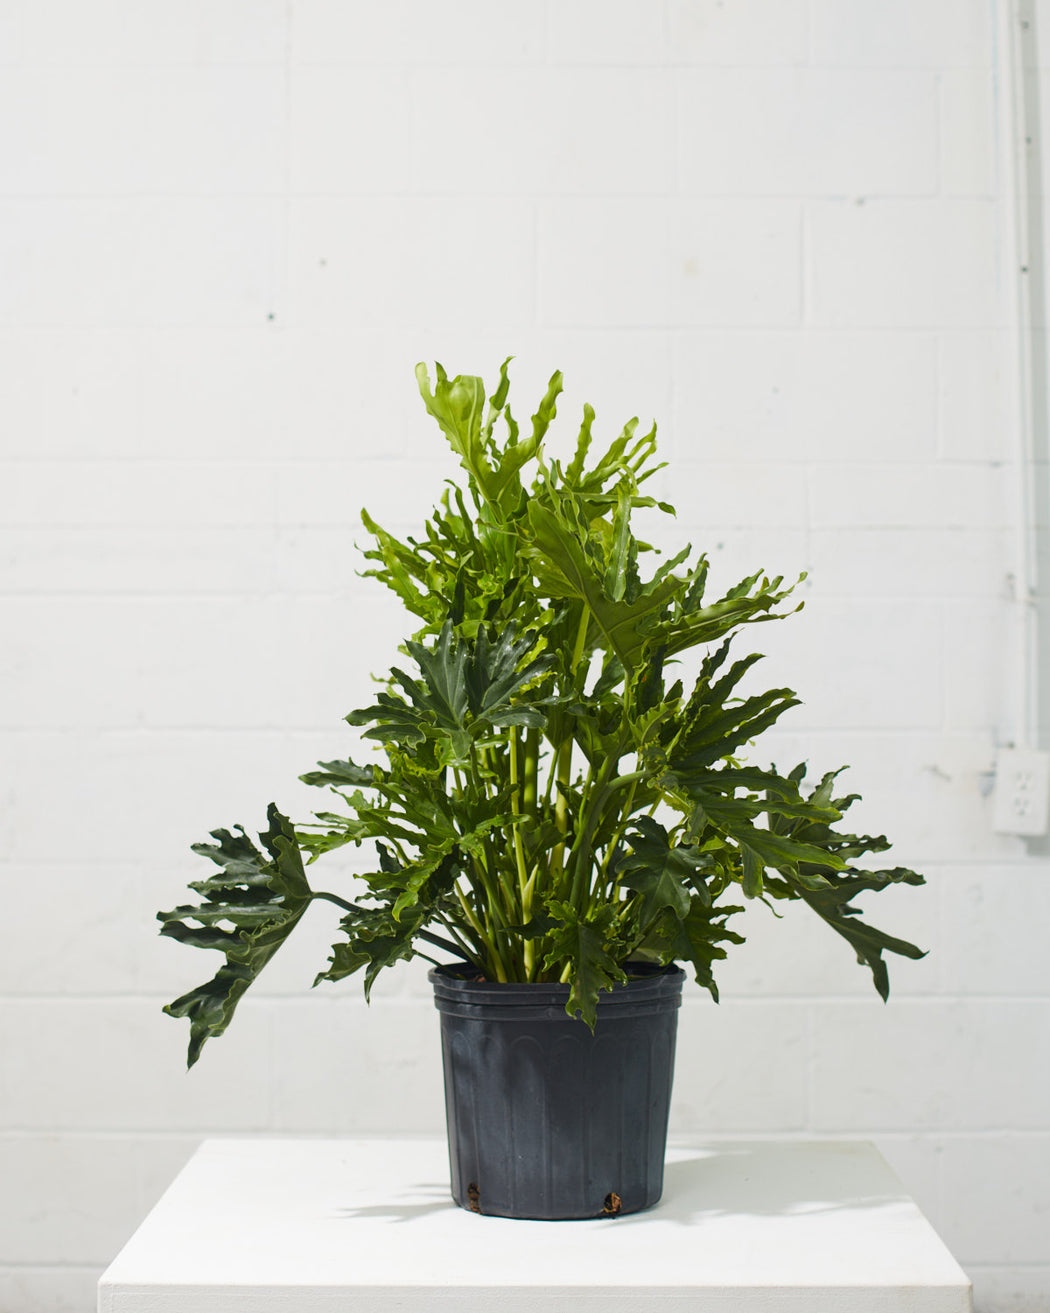 "PHILODENDRON 'SELLOUM HOPE' 10"" Grower Pot"